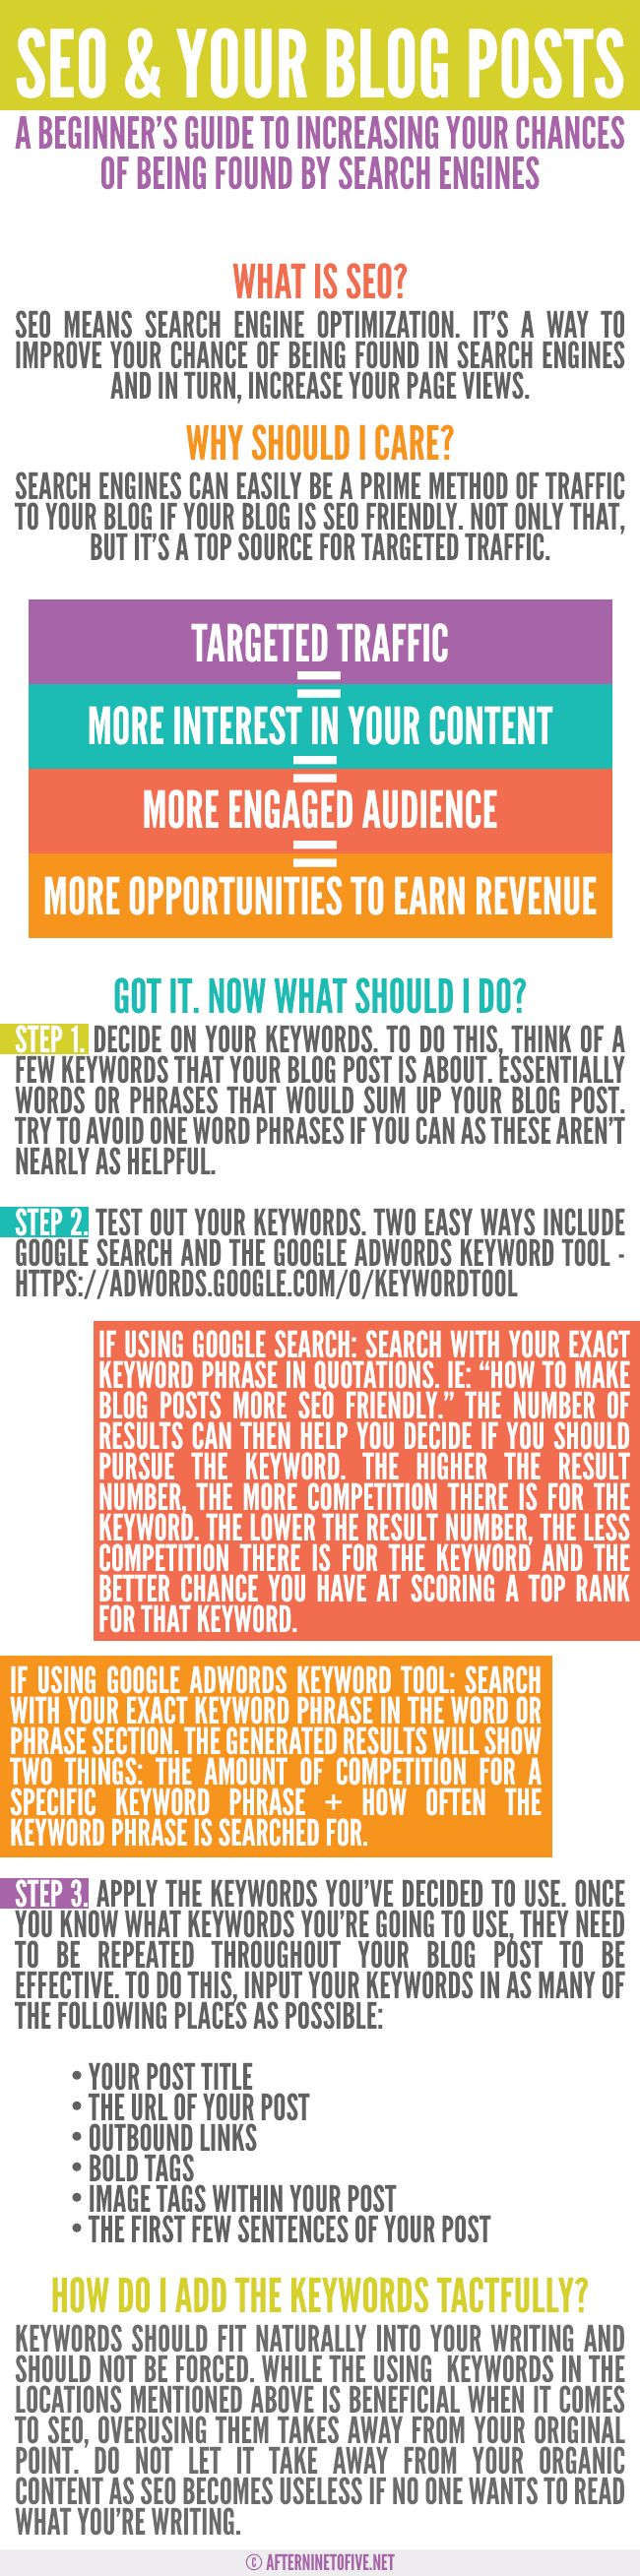 [INFOGRAPHIC] How To Make Your Blog Posts More SEO Friendly